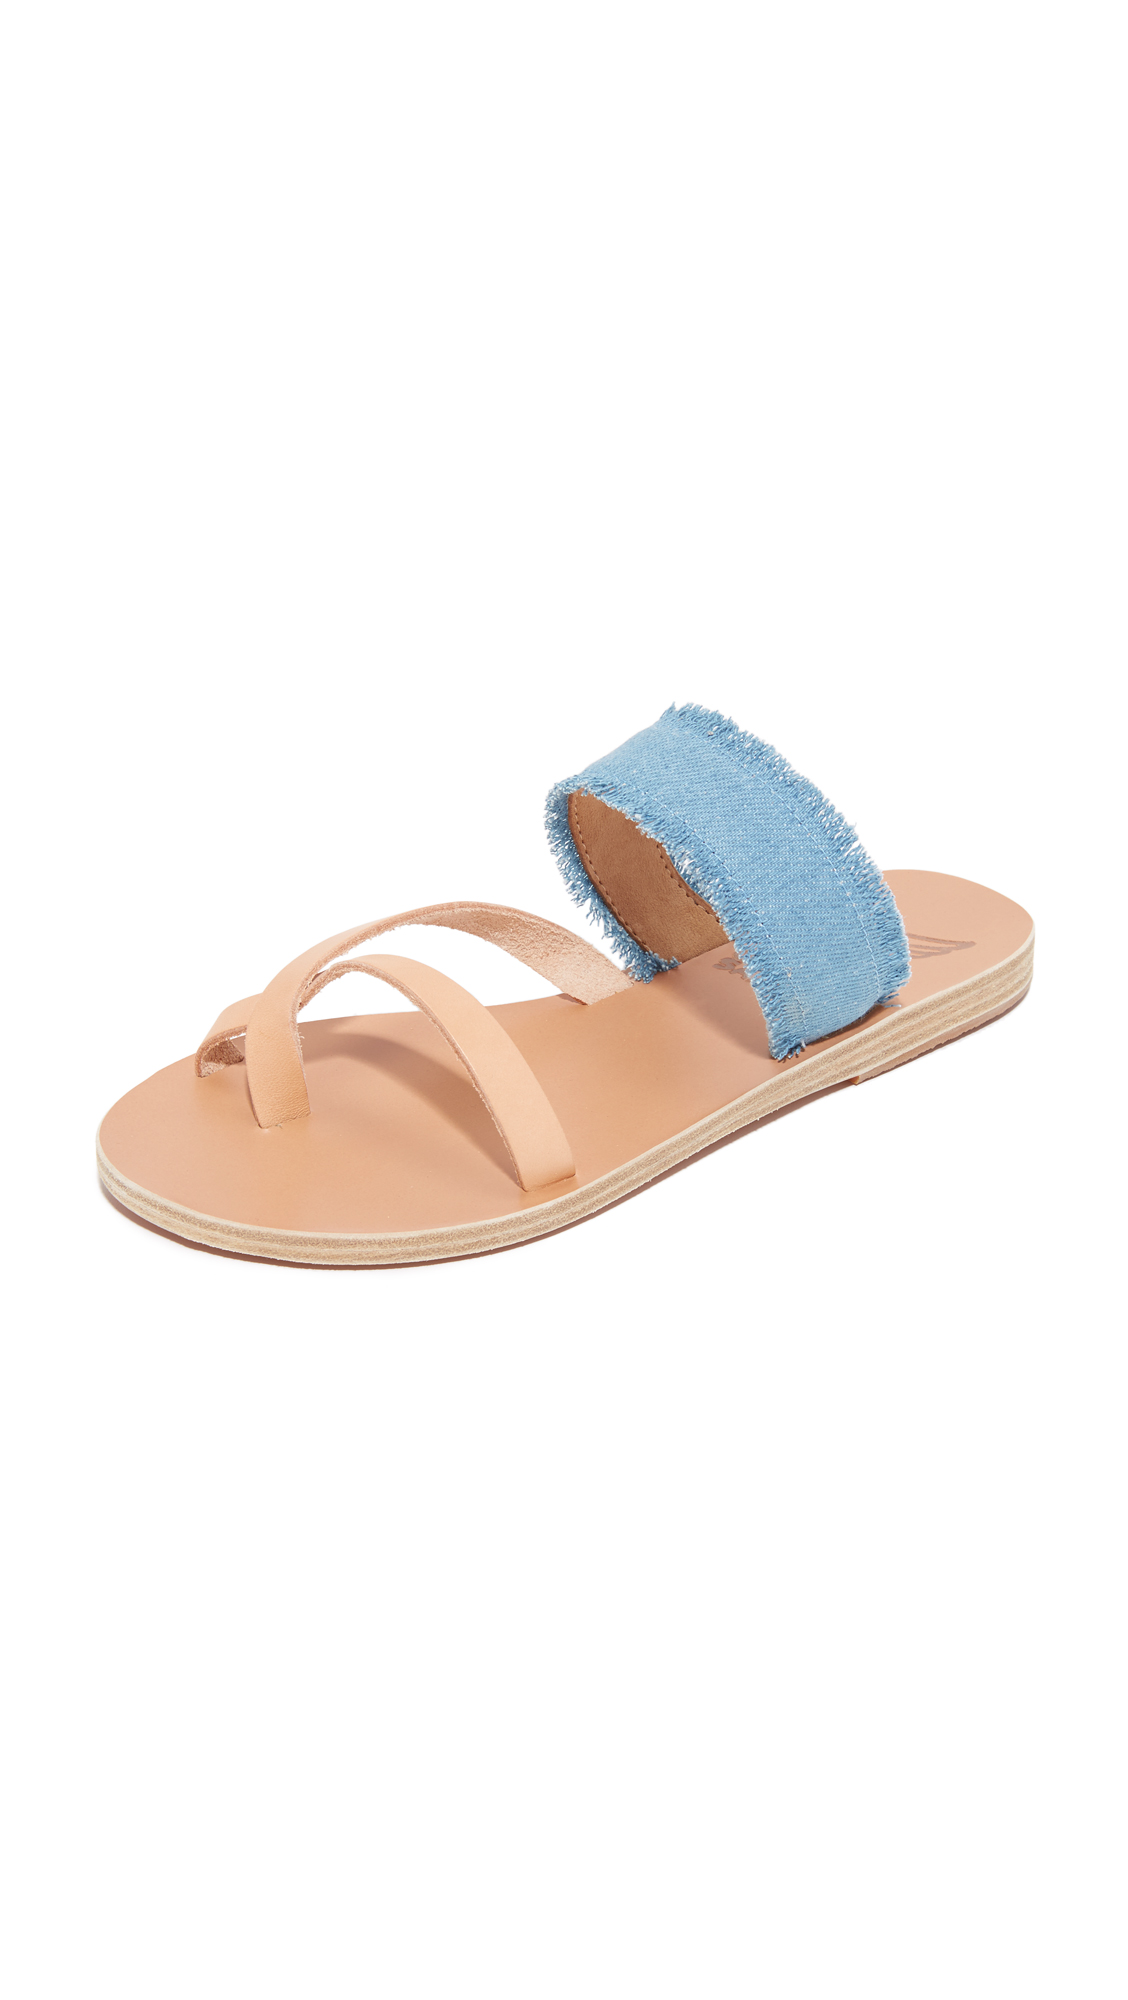 Ancient Greek Sandals Daphnae Sandals - Light Denim